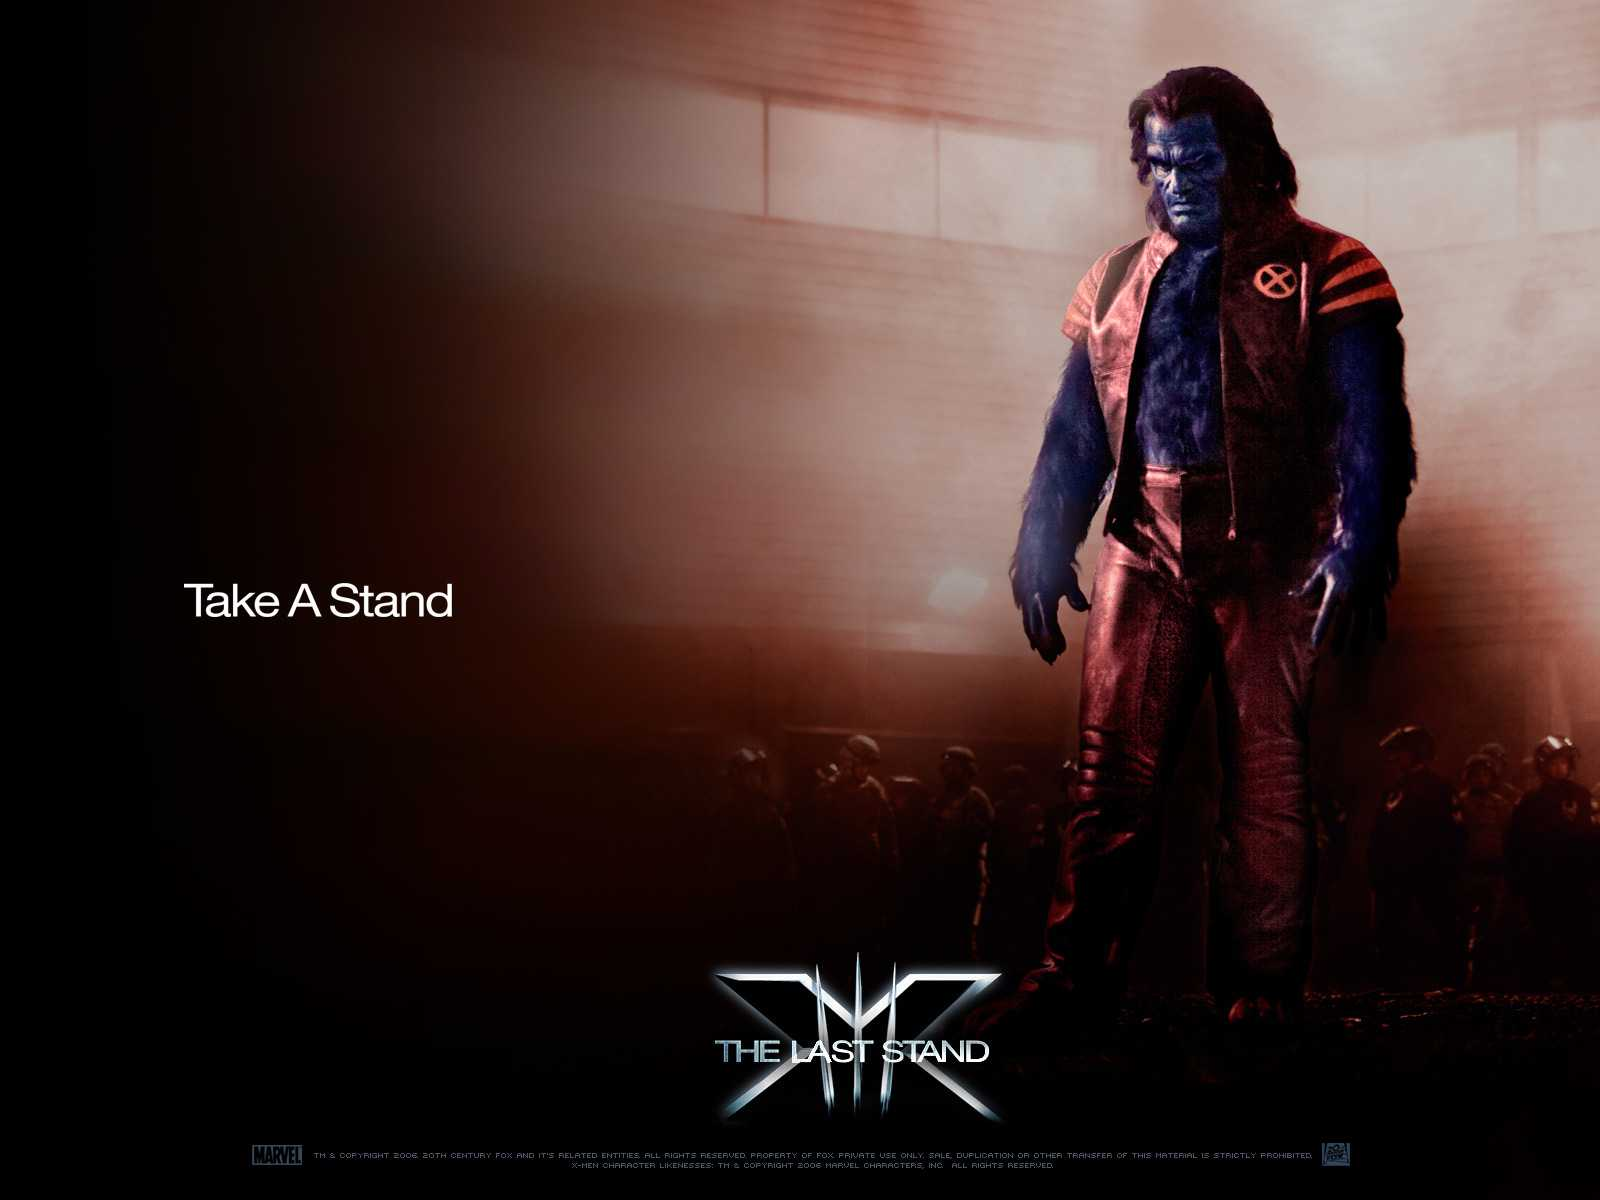 Photo x-men x-men: the last stand movies.